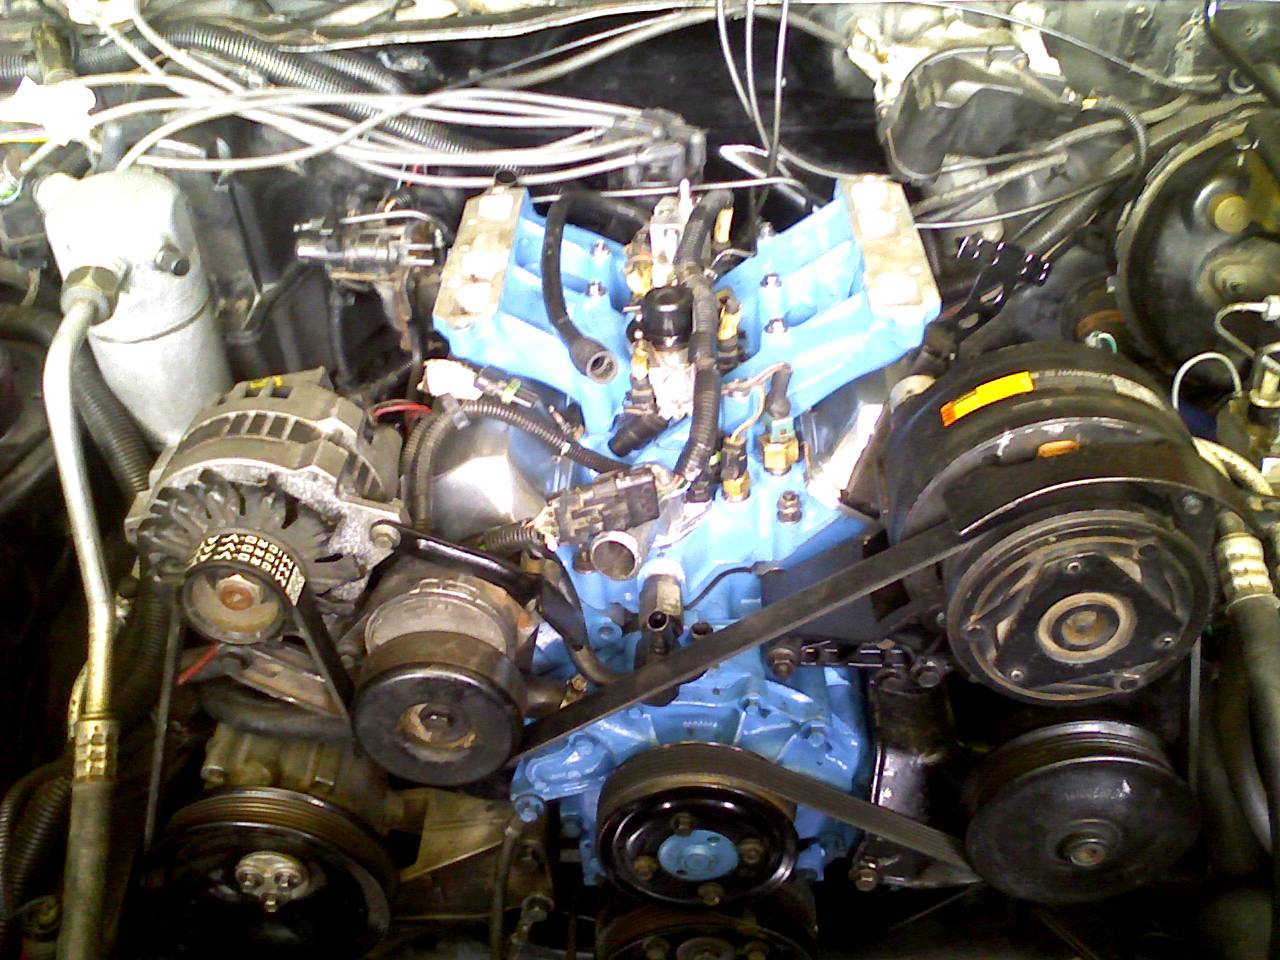 hight resolution of 2 8l to 2 8l engine swap pic 0013 jpg